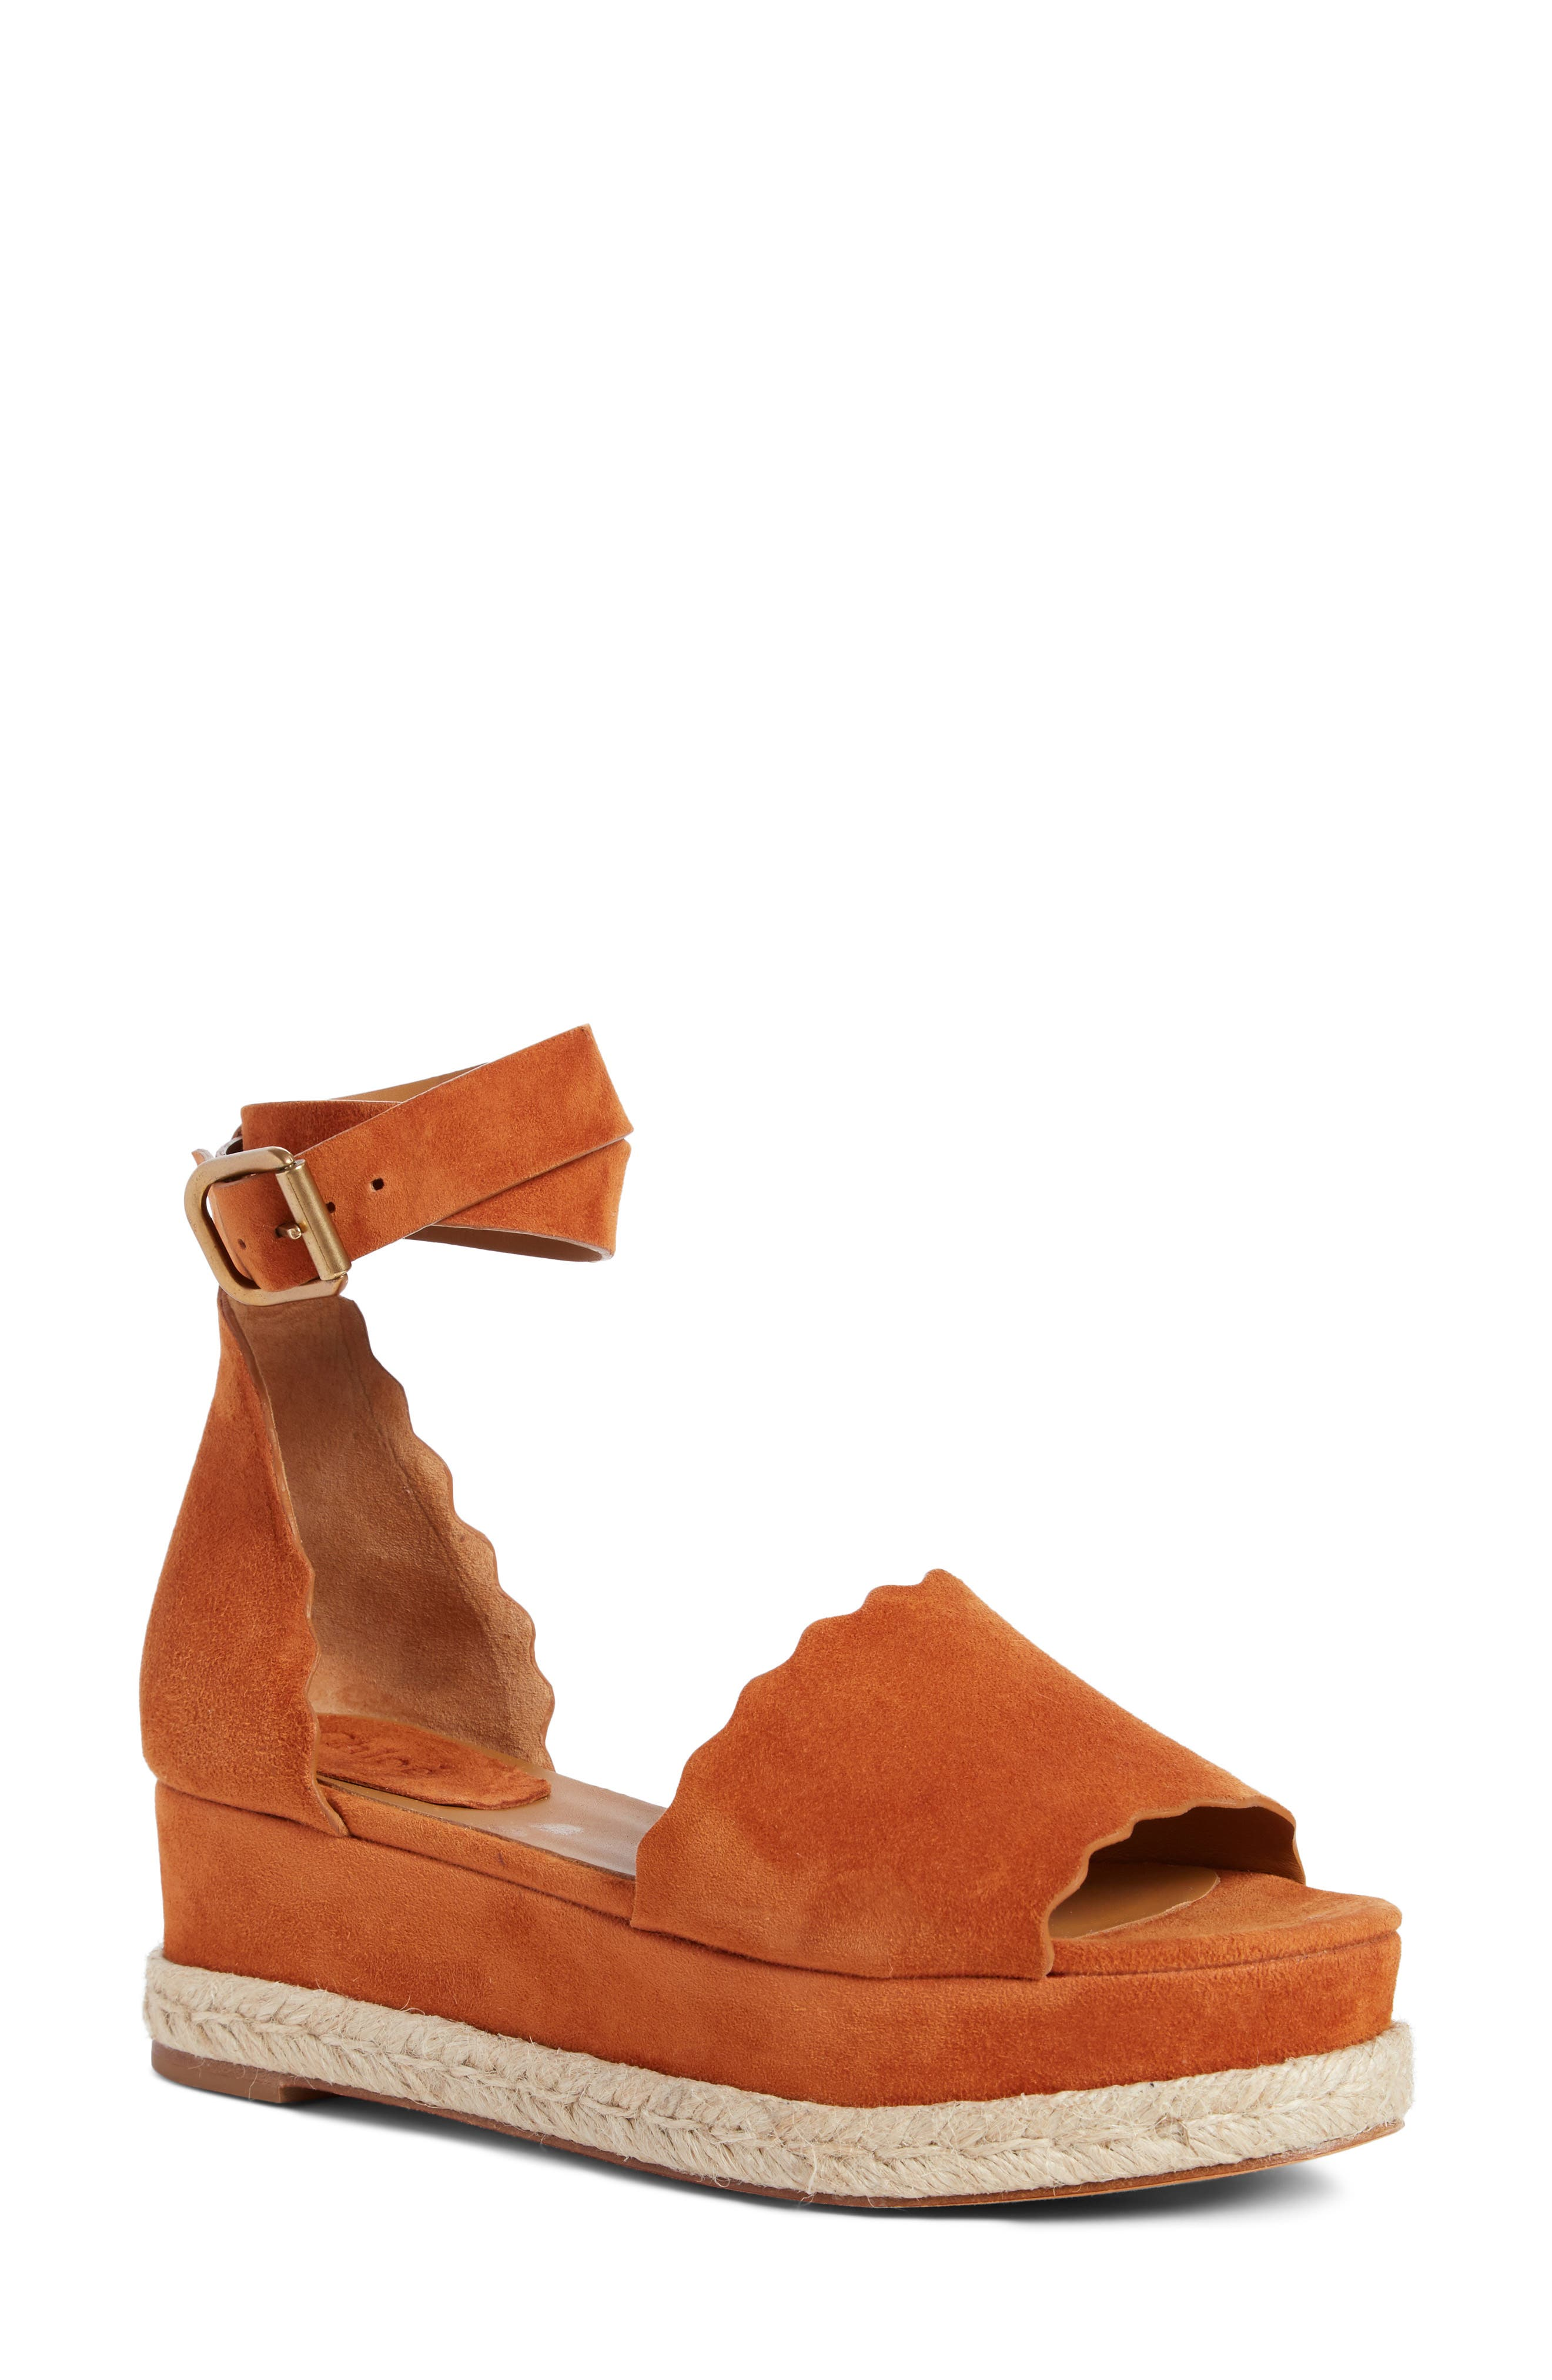 Lauren Espadrille Wedge Sandal,                             Main thumbnail 1, color,                             OCHRE DELIGHT